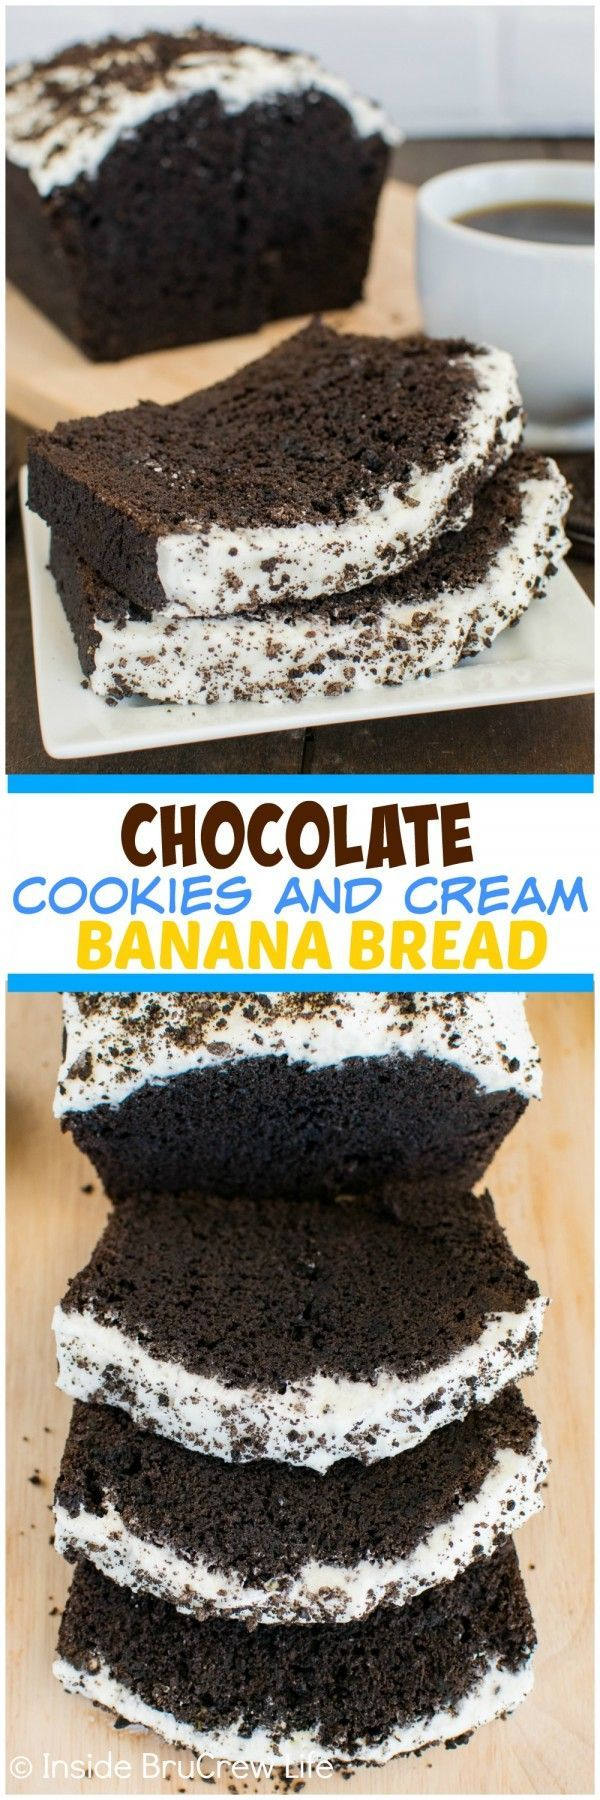 Chocolate Cookies and Cream Banana Bread - cookie chunks and frosting make this banana bread a fun and decadent breakfast recipe.